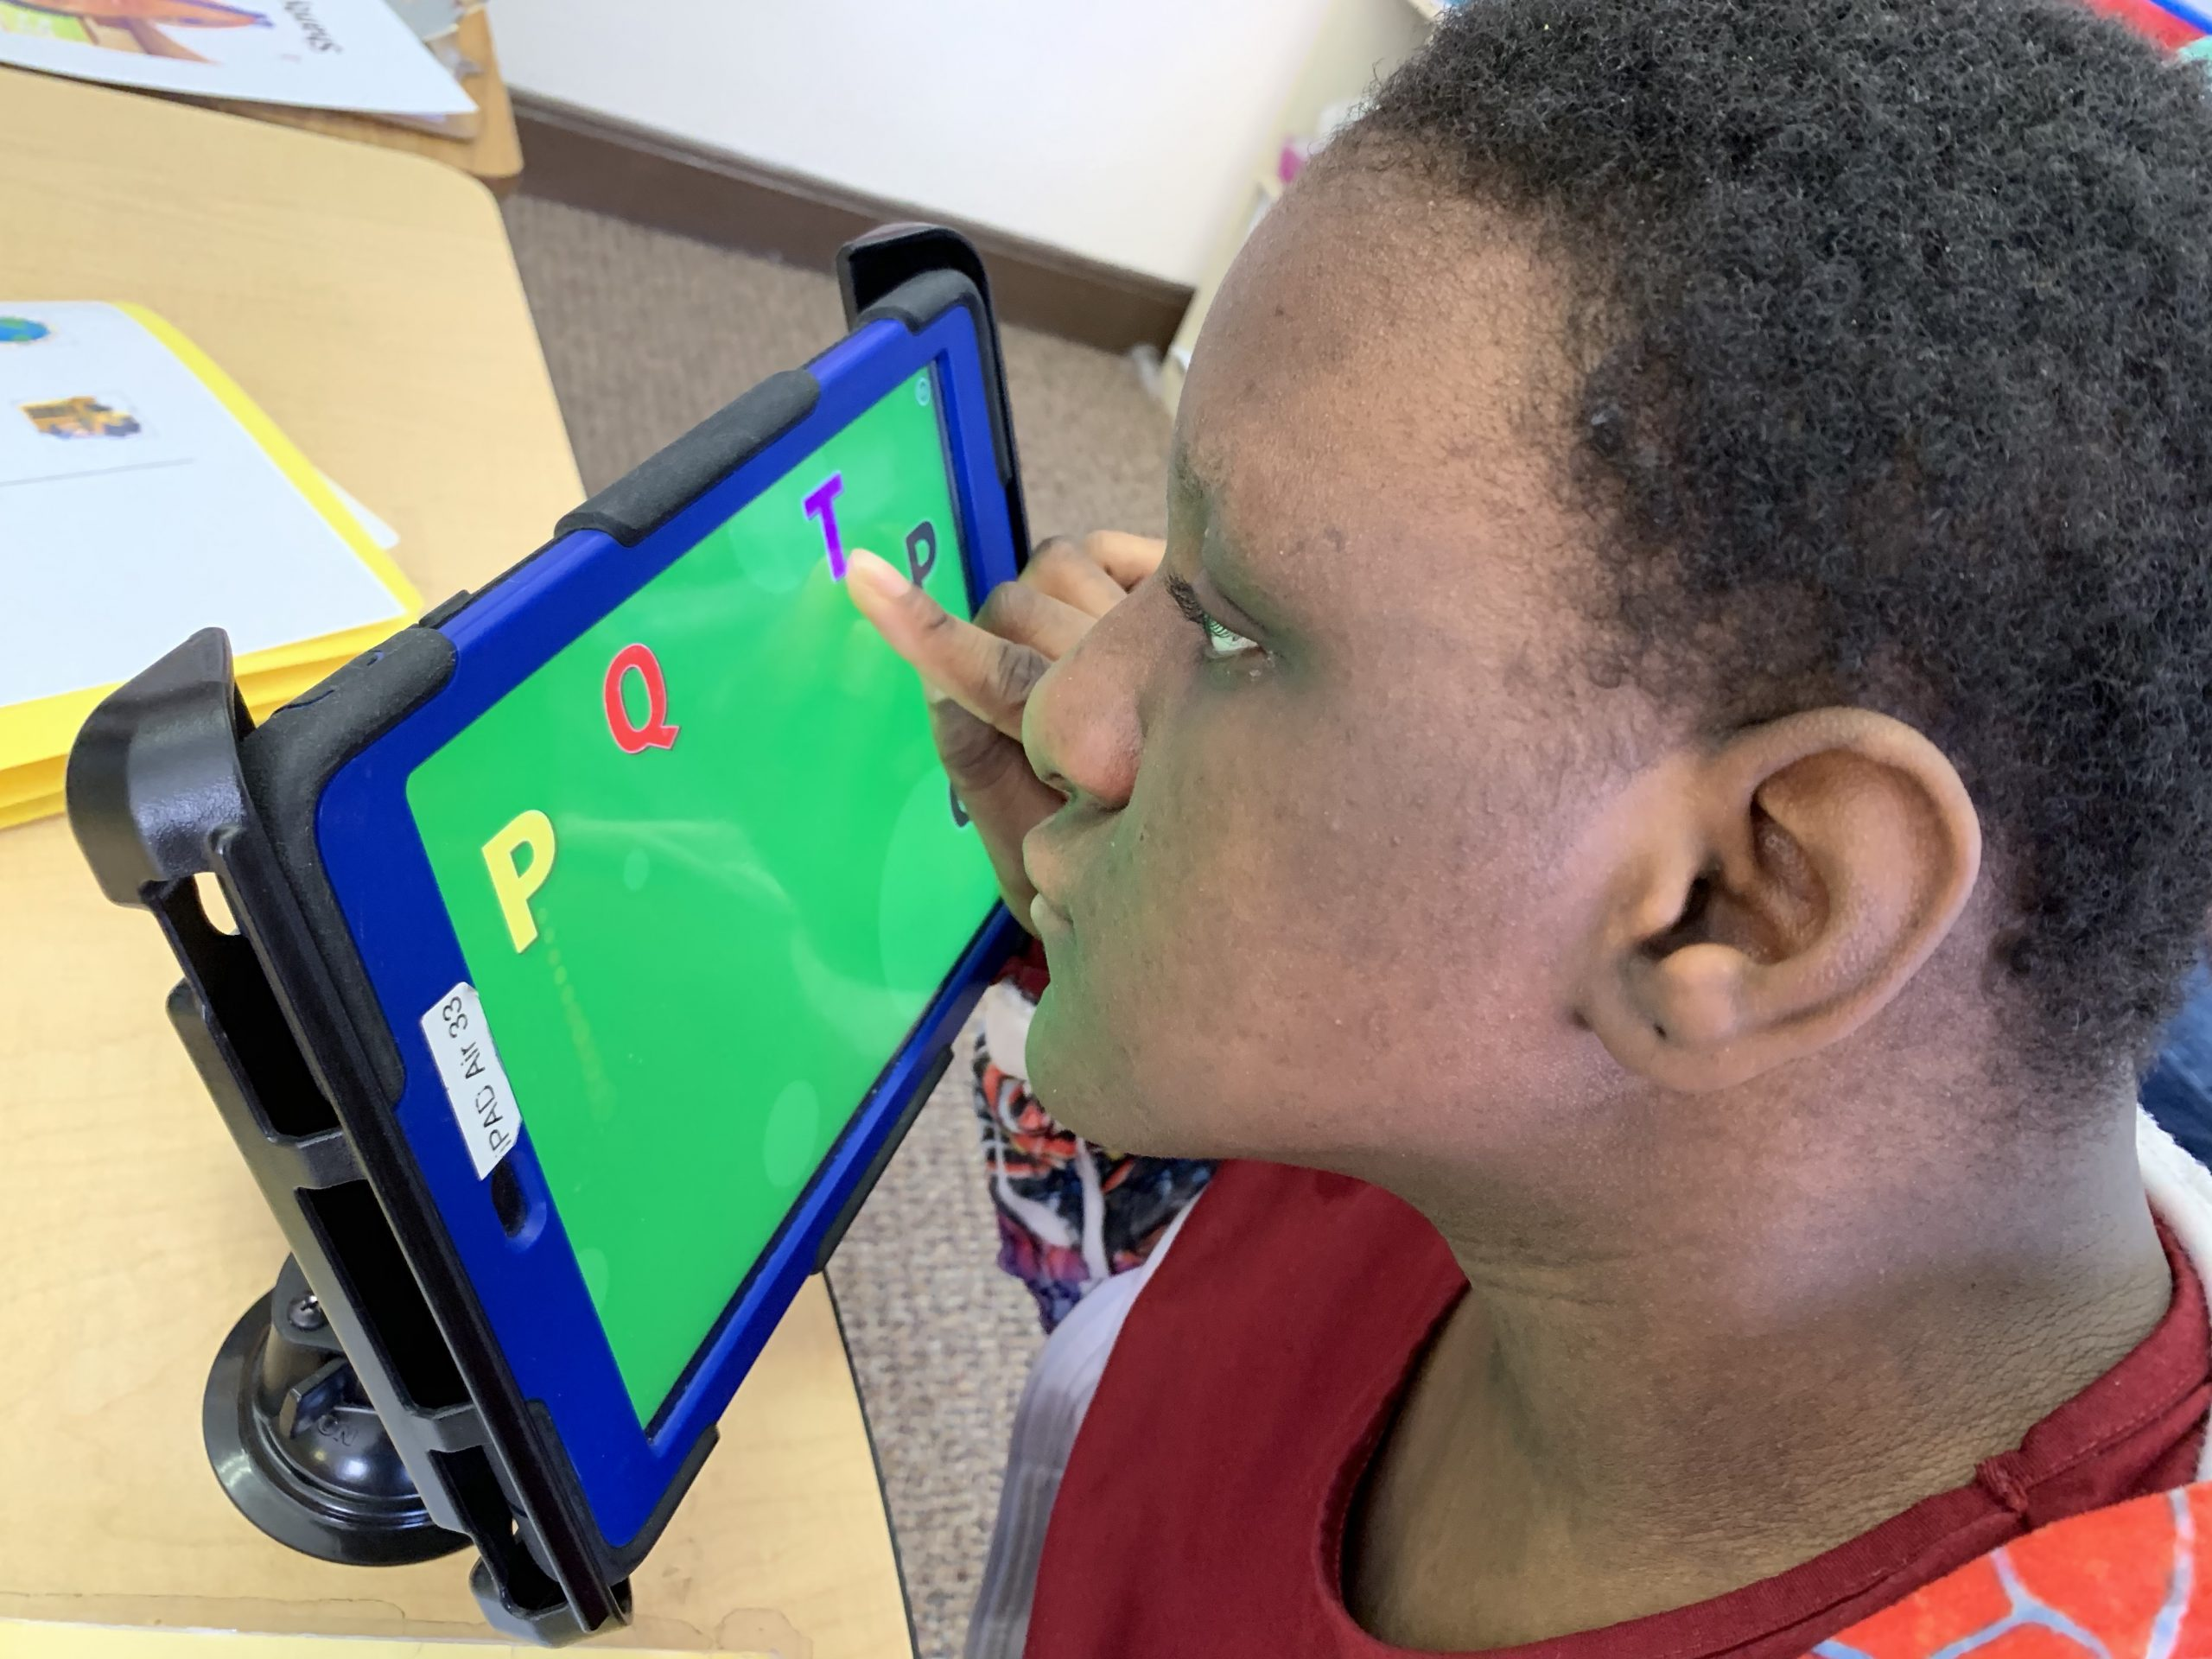 A middle school female student is using an iPad. She is matching the letters in a game.